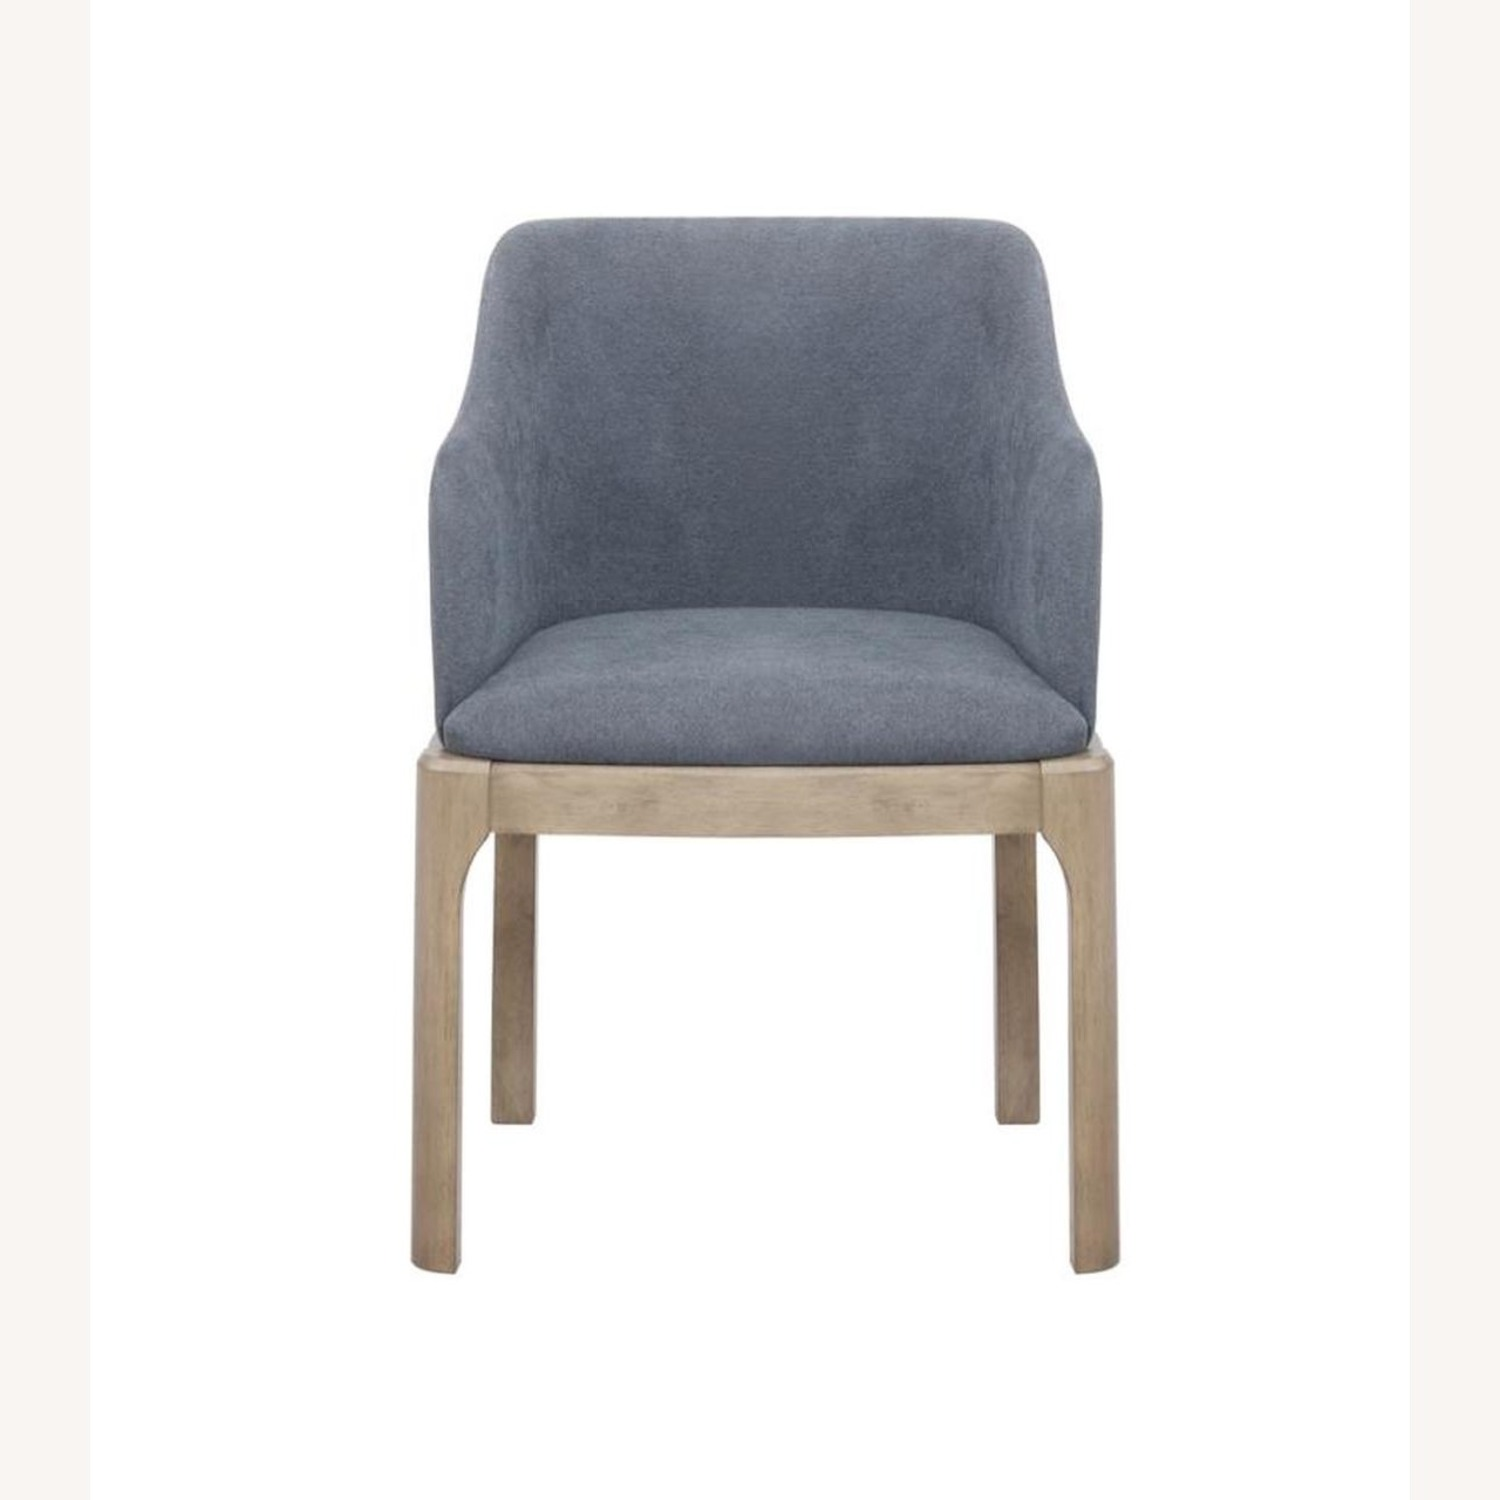 Modern Danish Style Arm Chair In Denim Blue - image-1